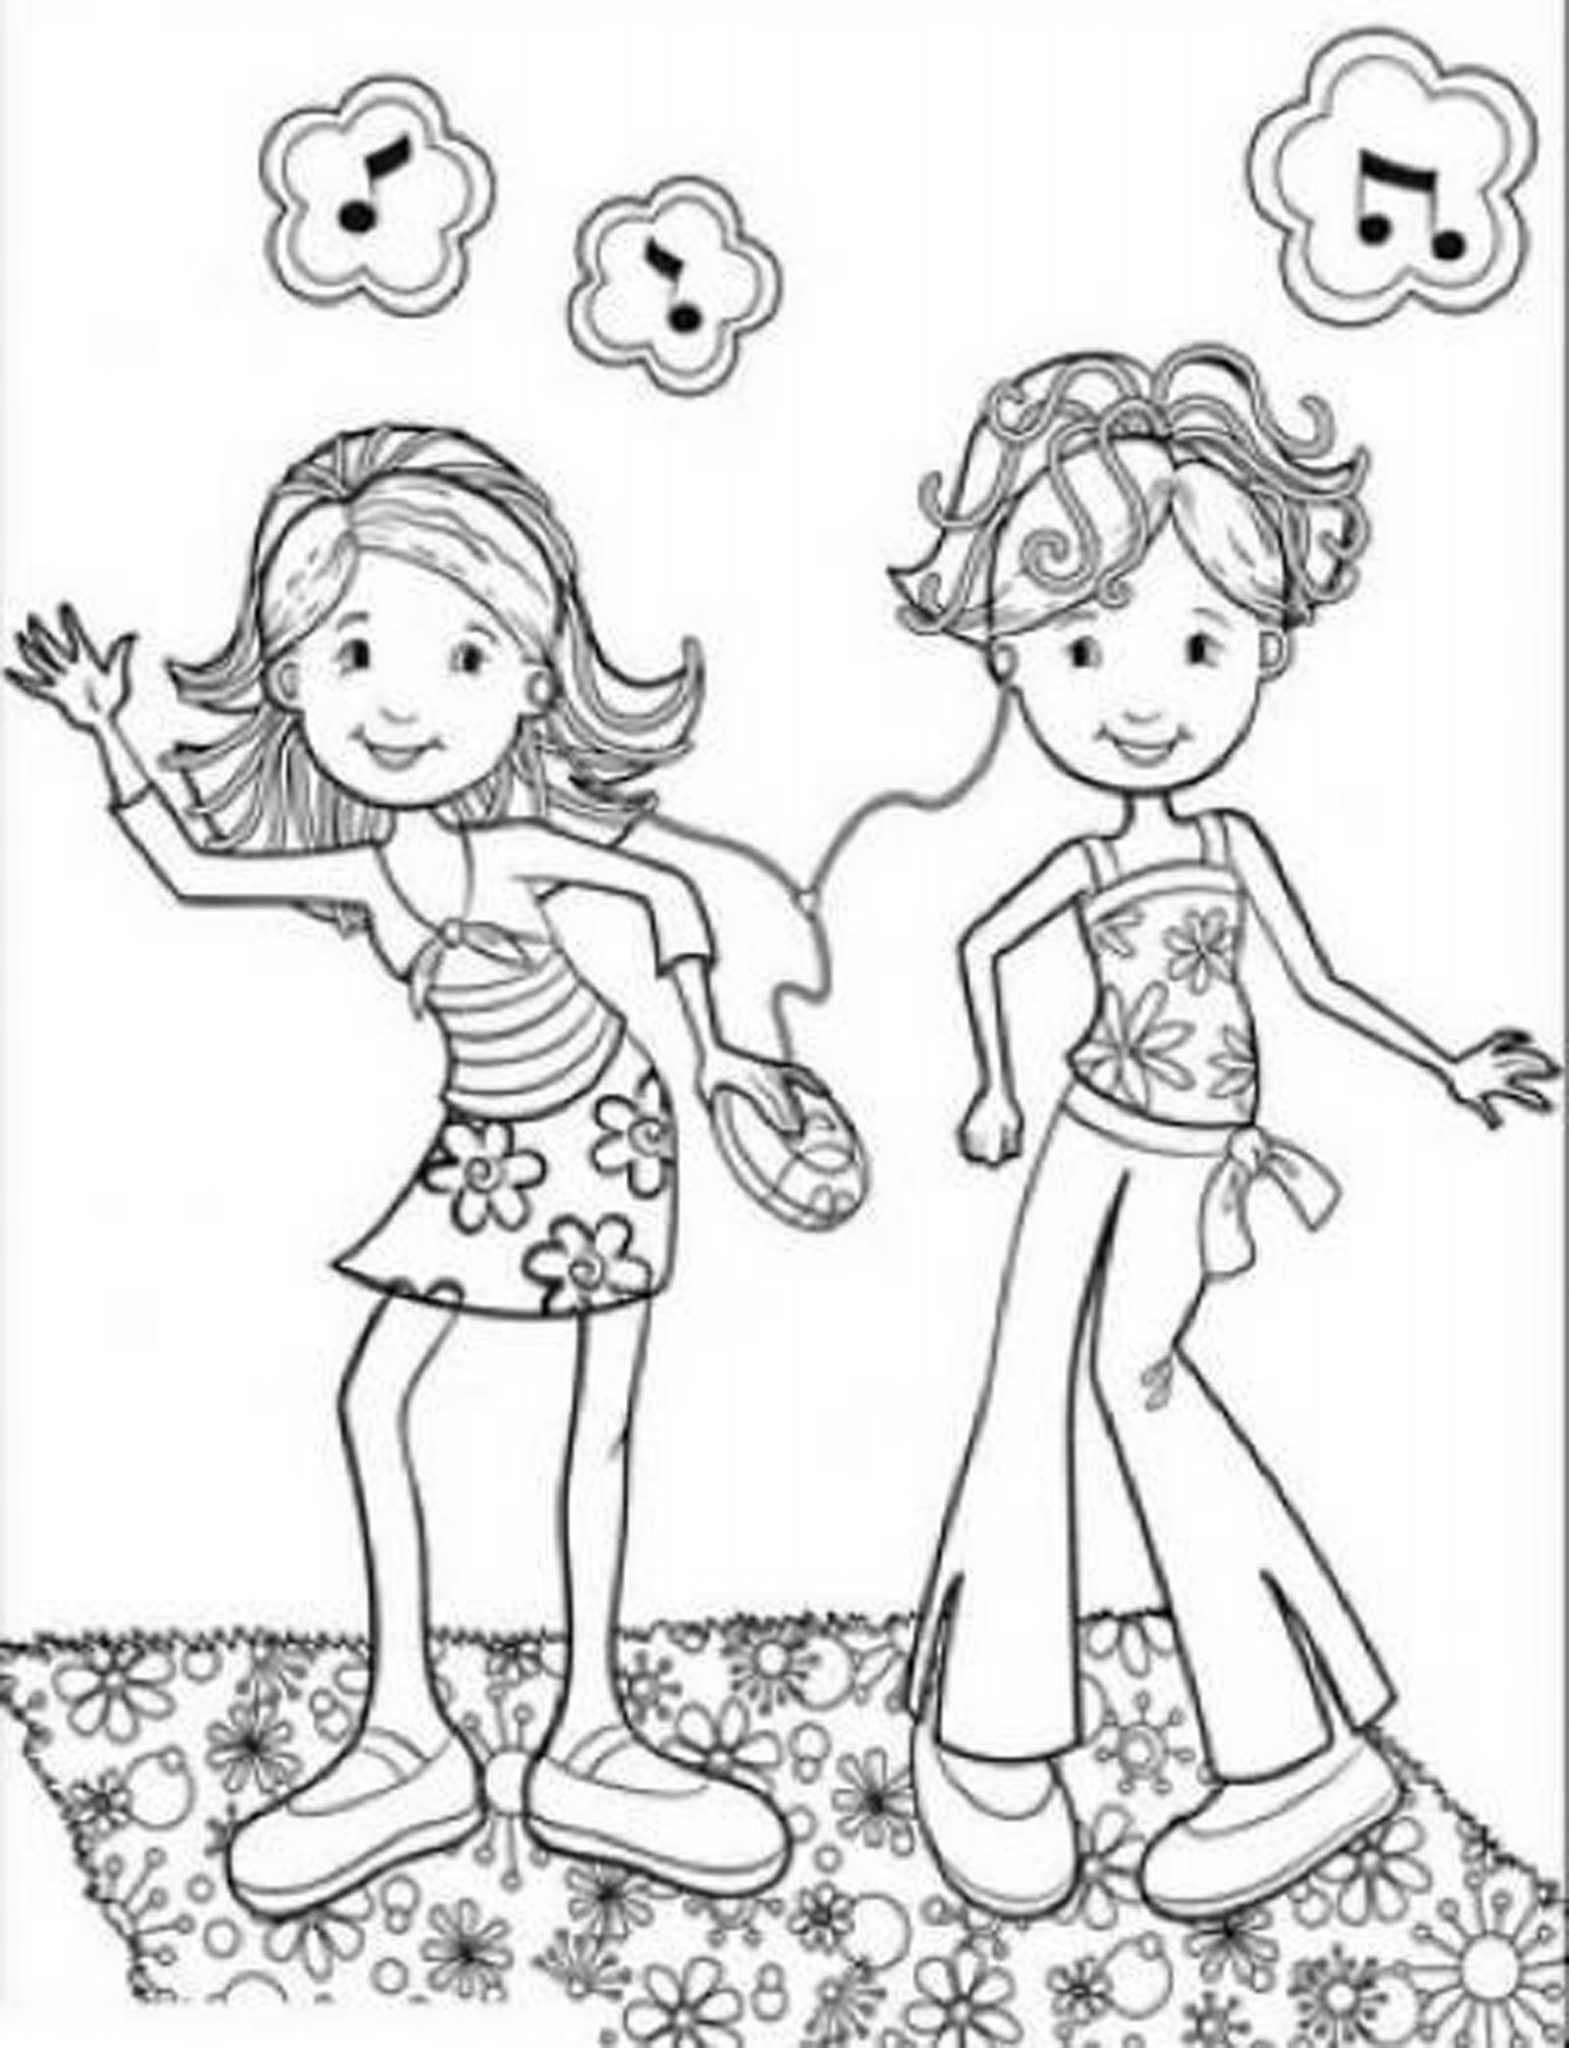 coloring pages for girls age 11 cute coloring pages for girls bestappsforkidscom girls 11 age coloring for pages